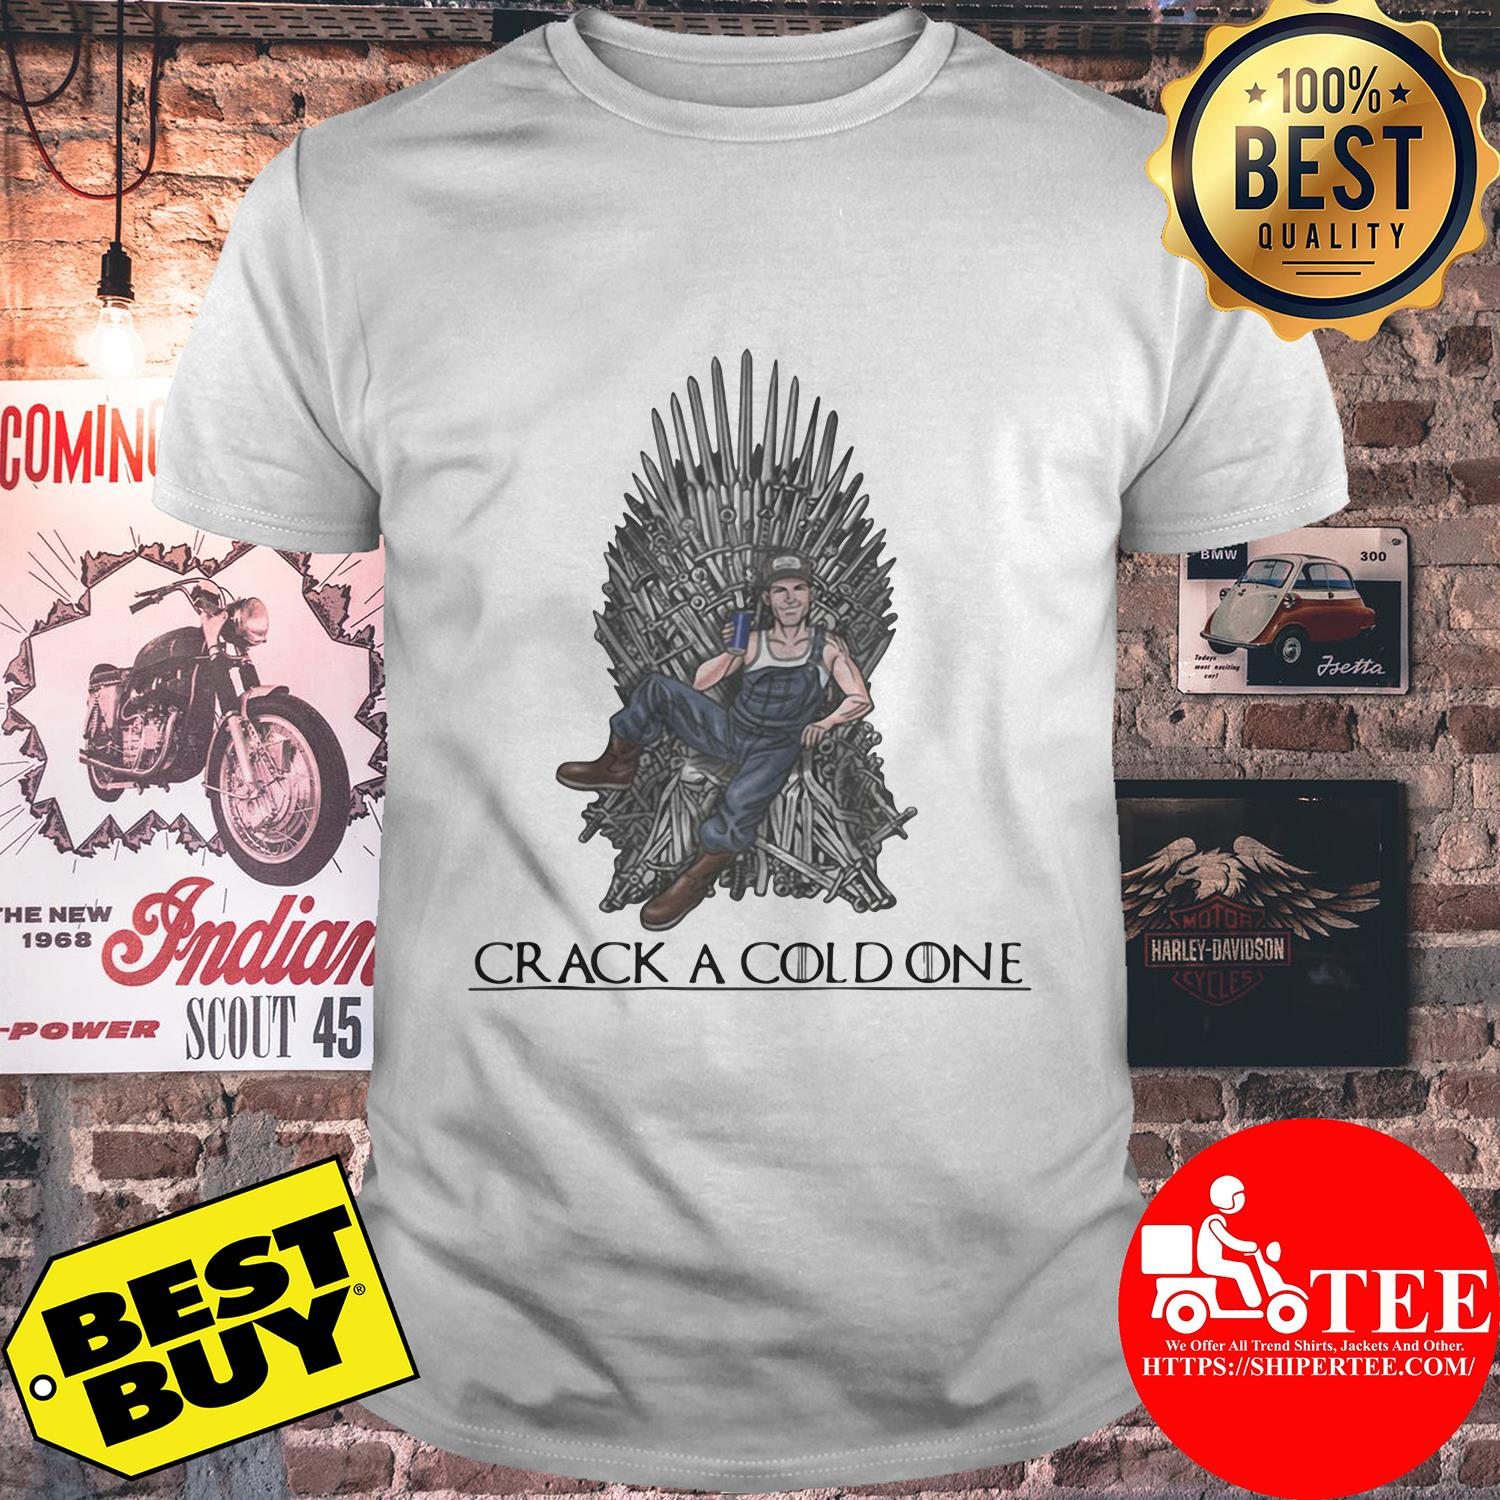 Crack a cold one Game of Thrones shirt